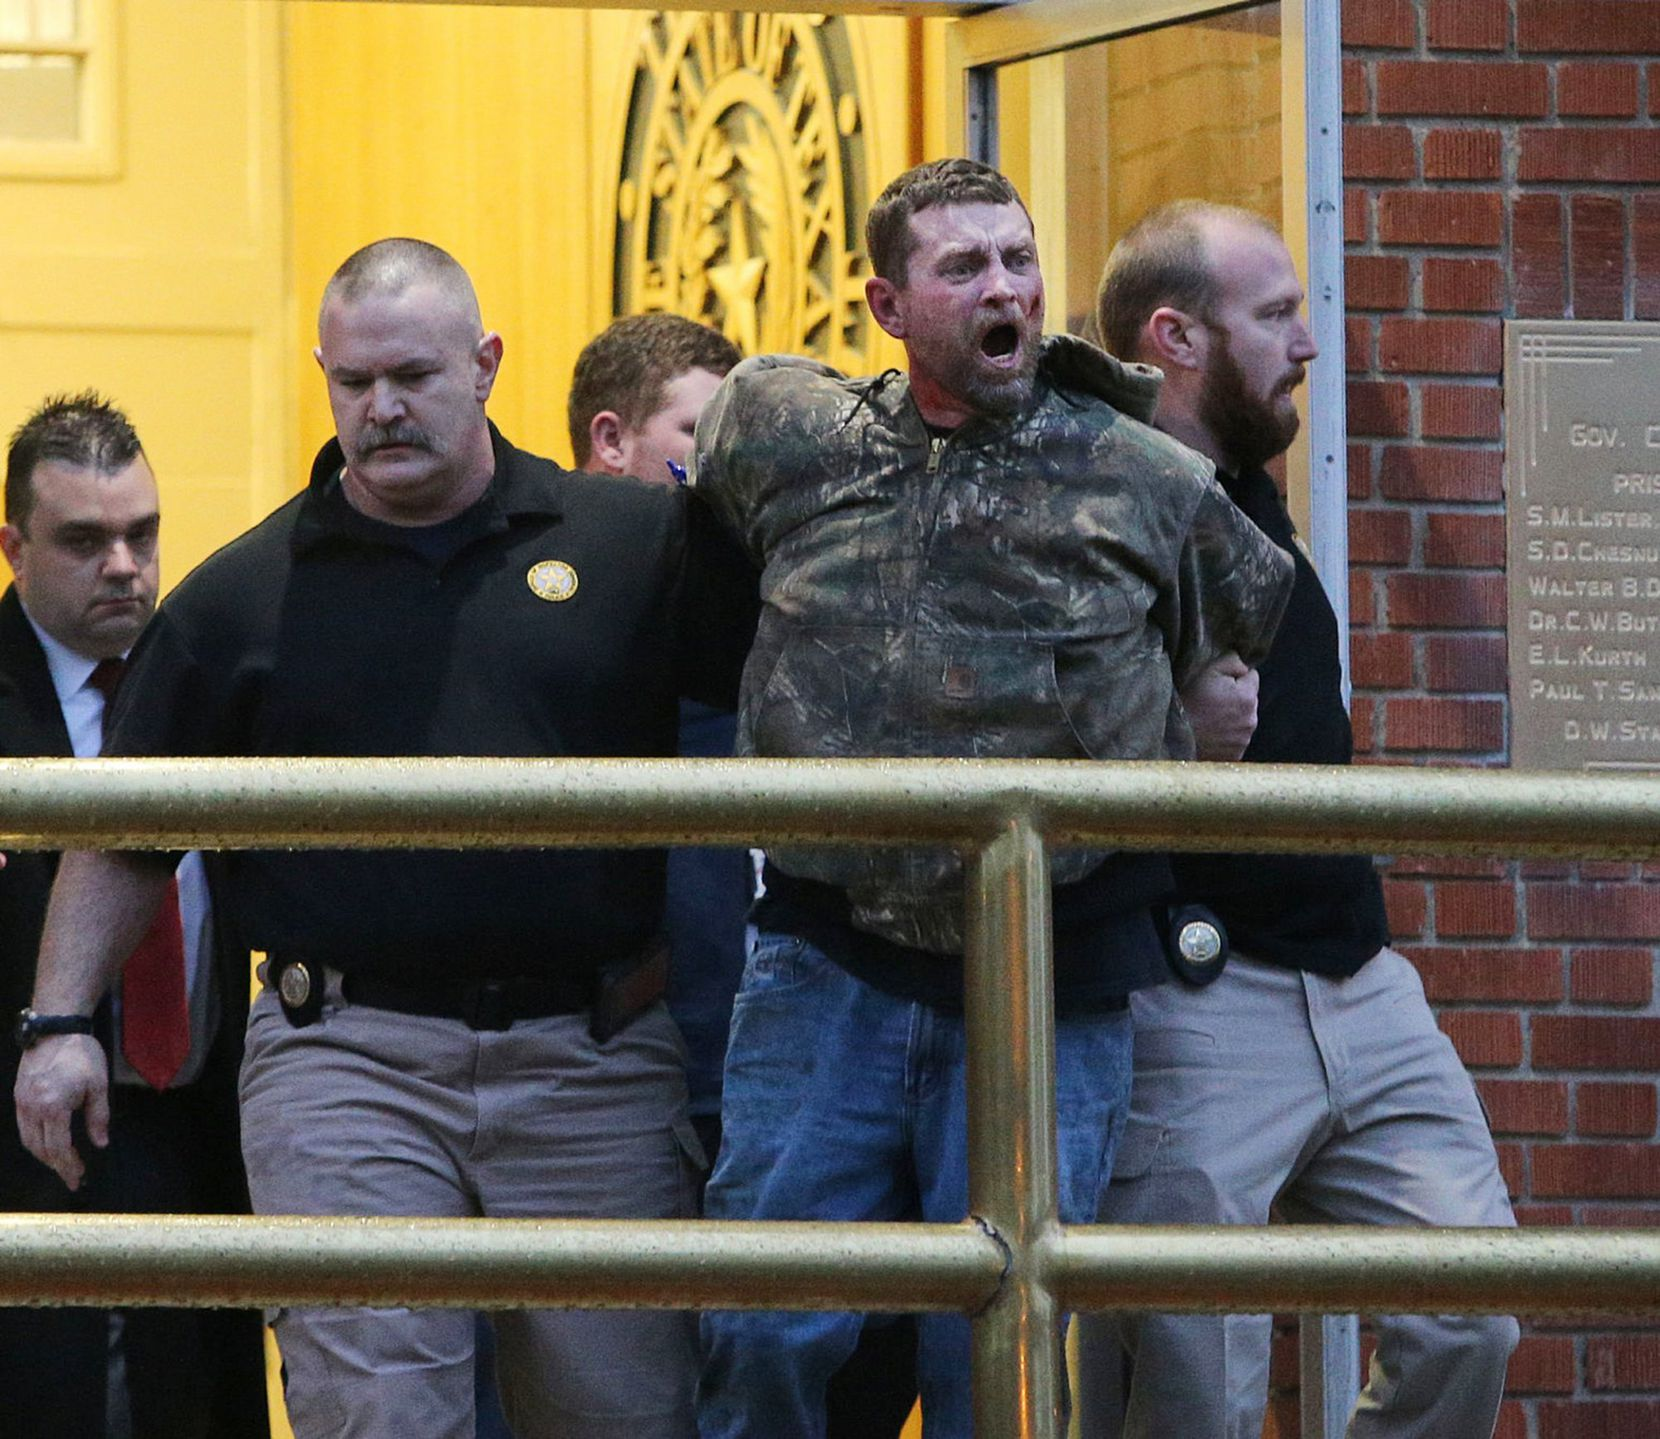 Gordon Coble was led out of Huntsville state prison Thursday after authorities say he went berserk during the execution of his father, Billie Wayne Coble. (Jerry Larson/Waco Tribune-Herald via AP)